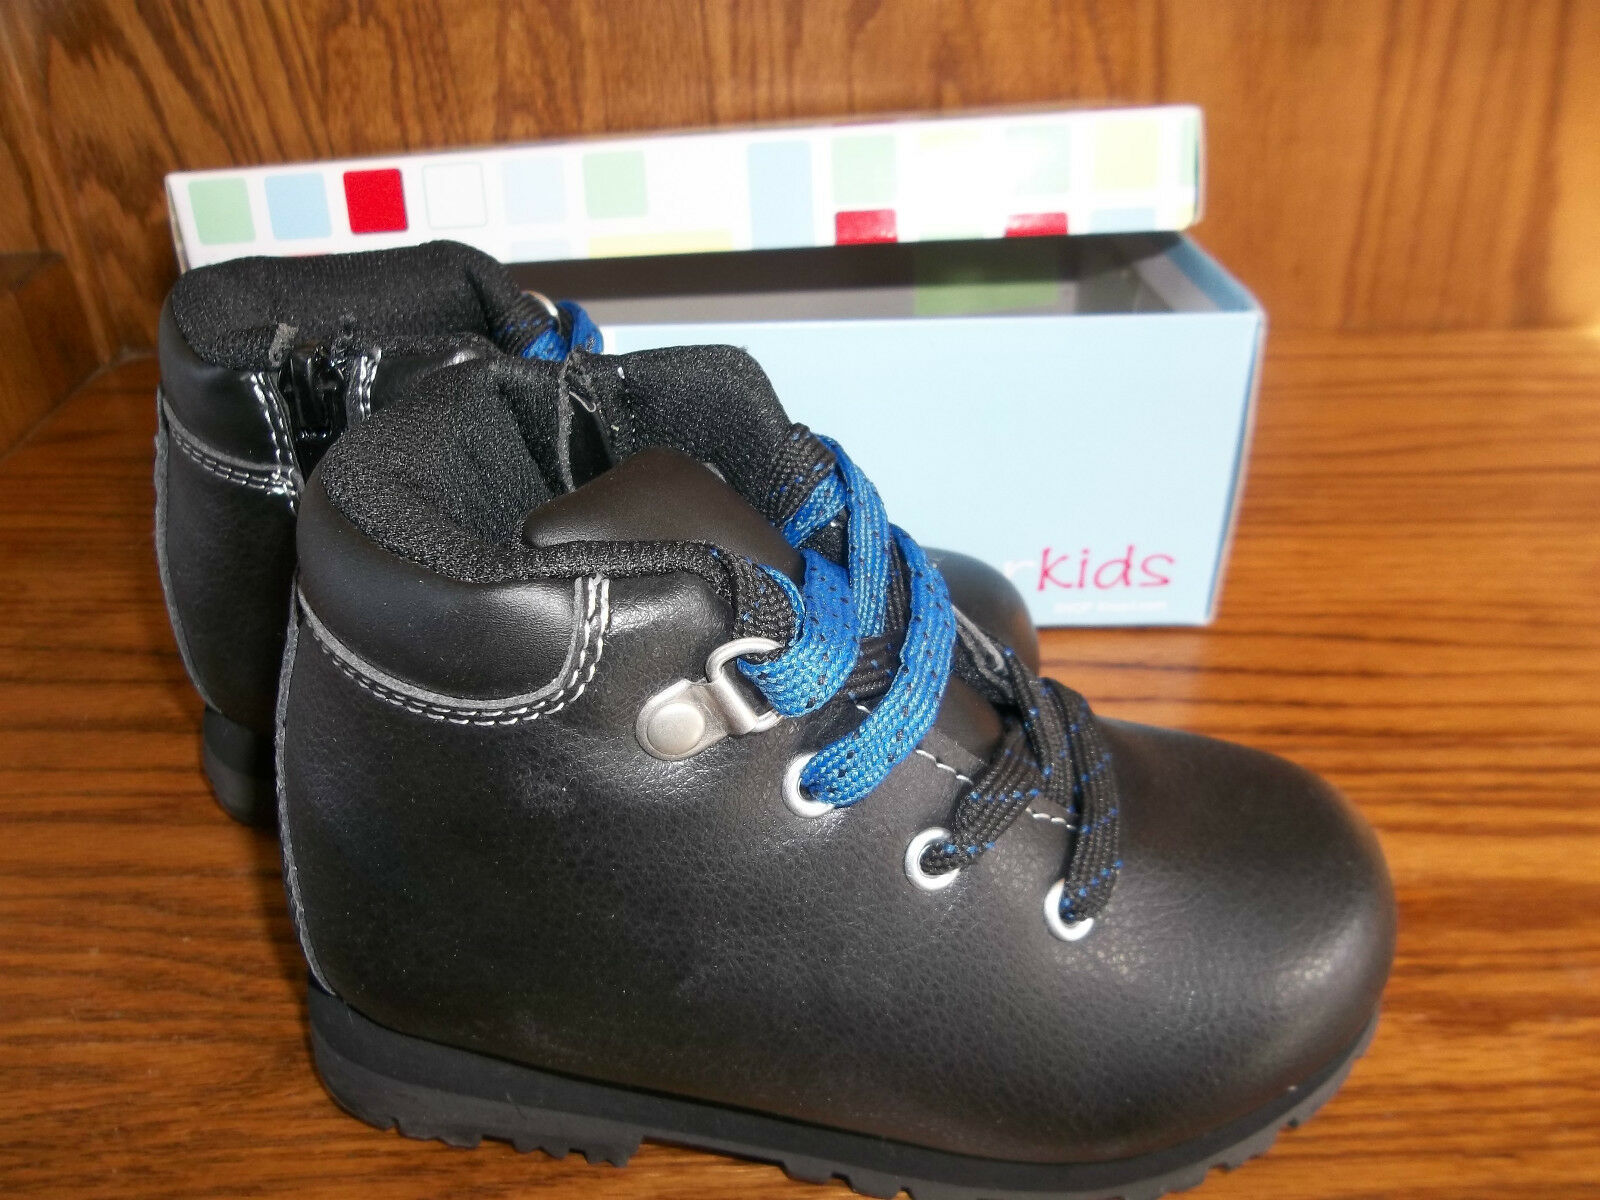 NEW WONDERKIDS BLACK BOOTS BABY/ TODDLER SIZE 10 MSP $19.99 1